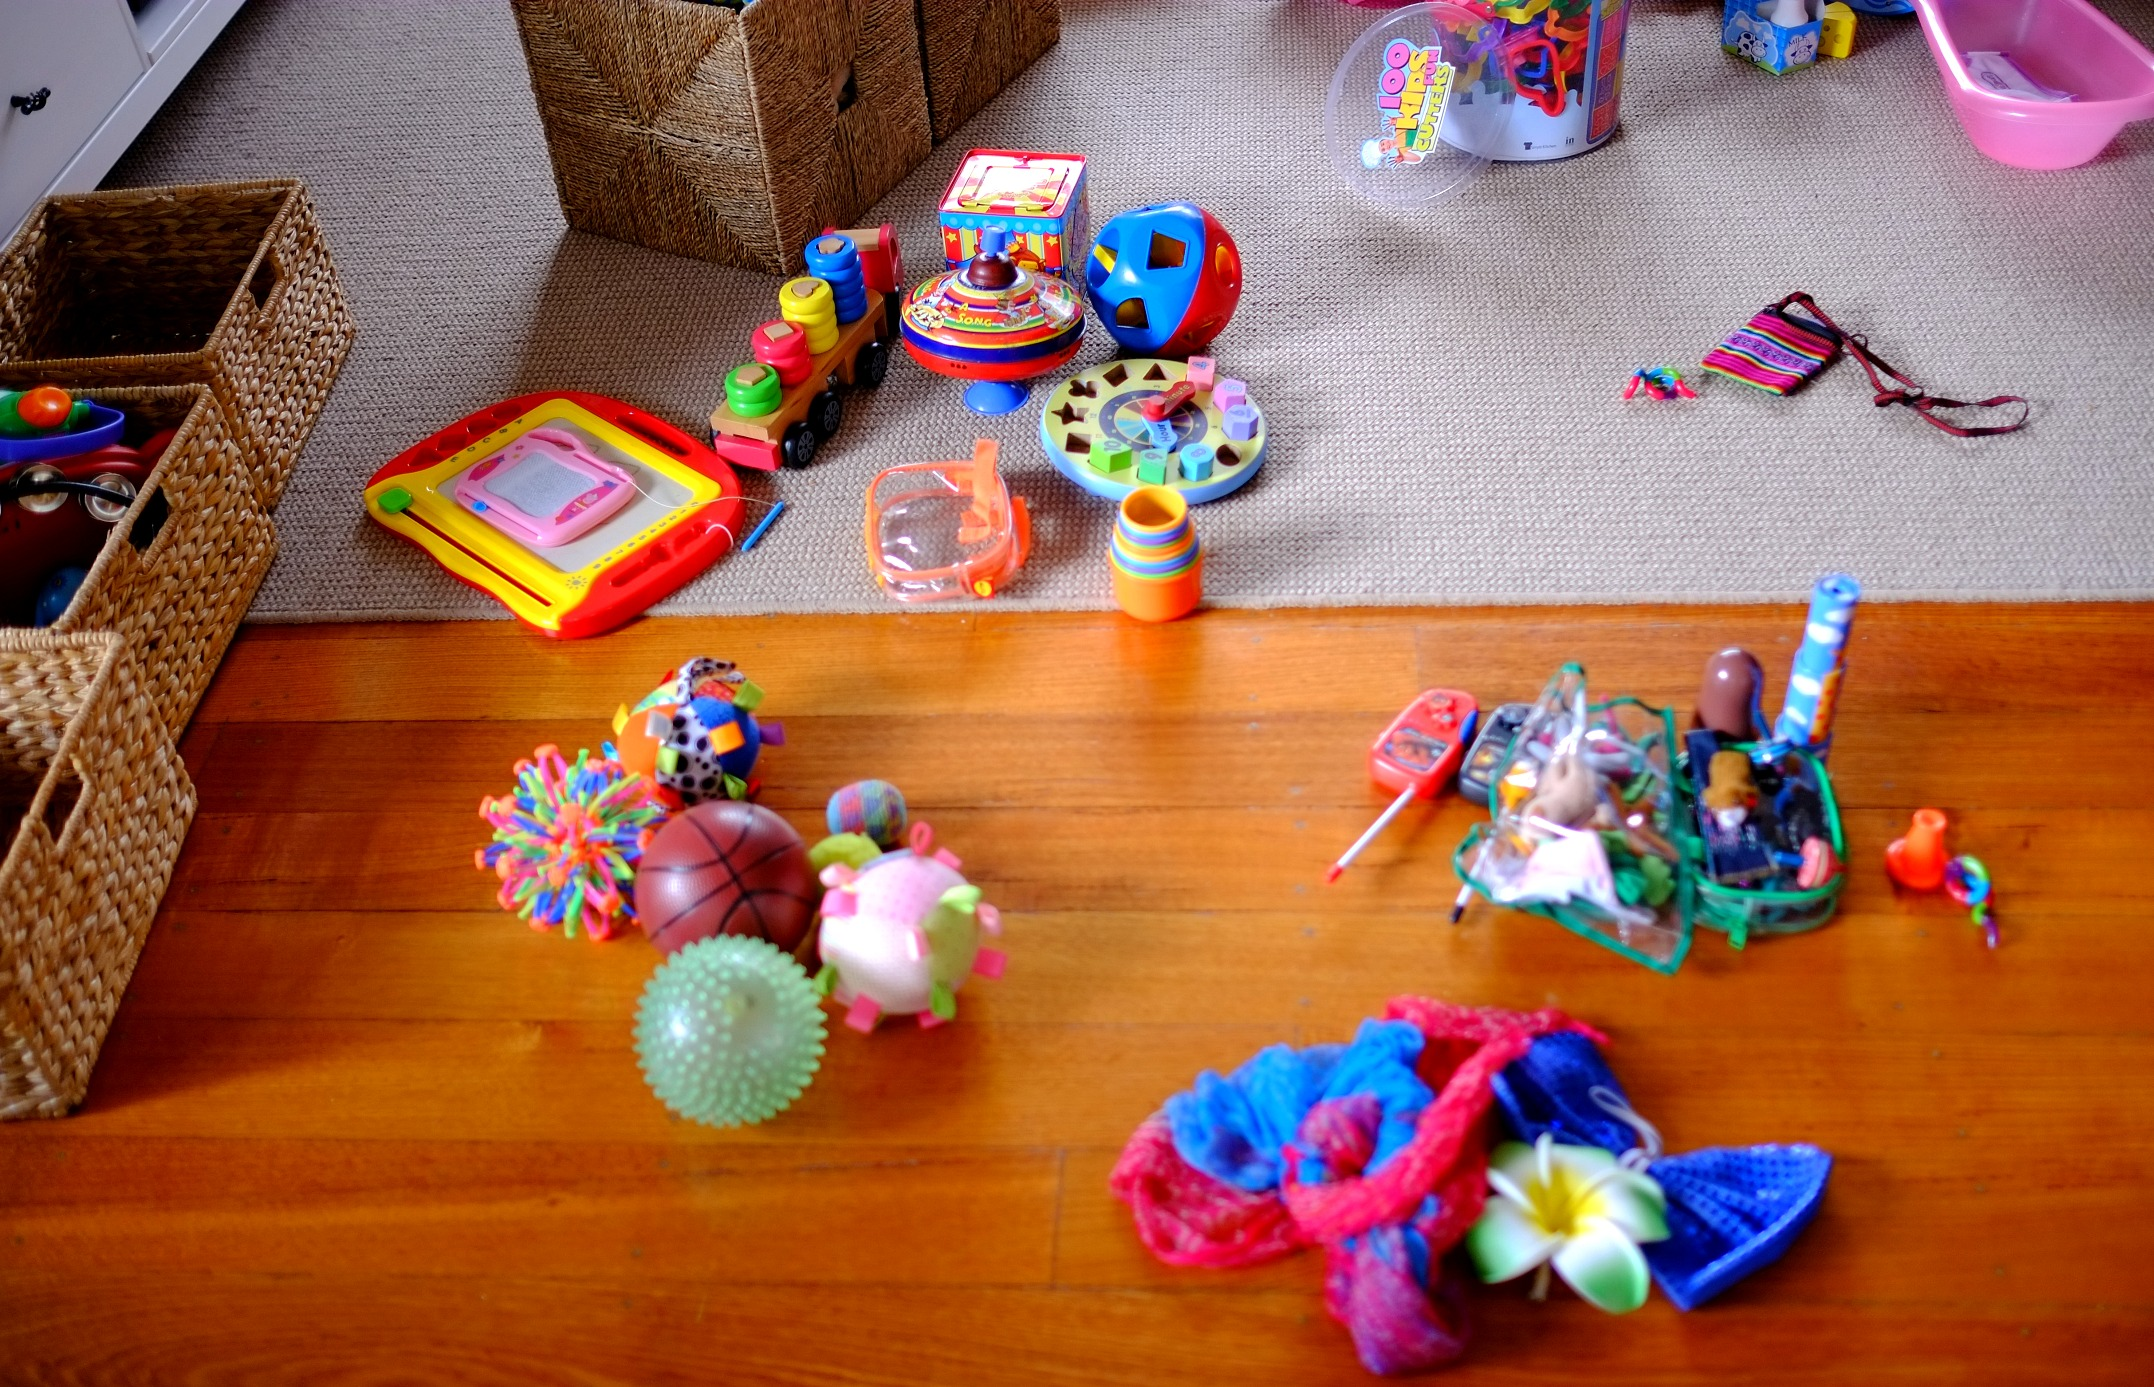 sorting toys into categories